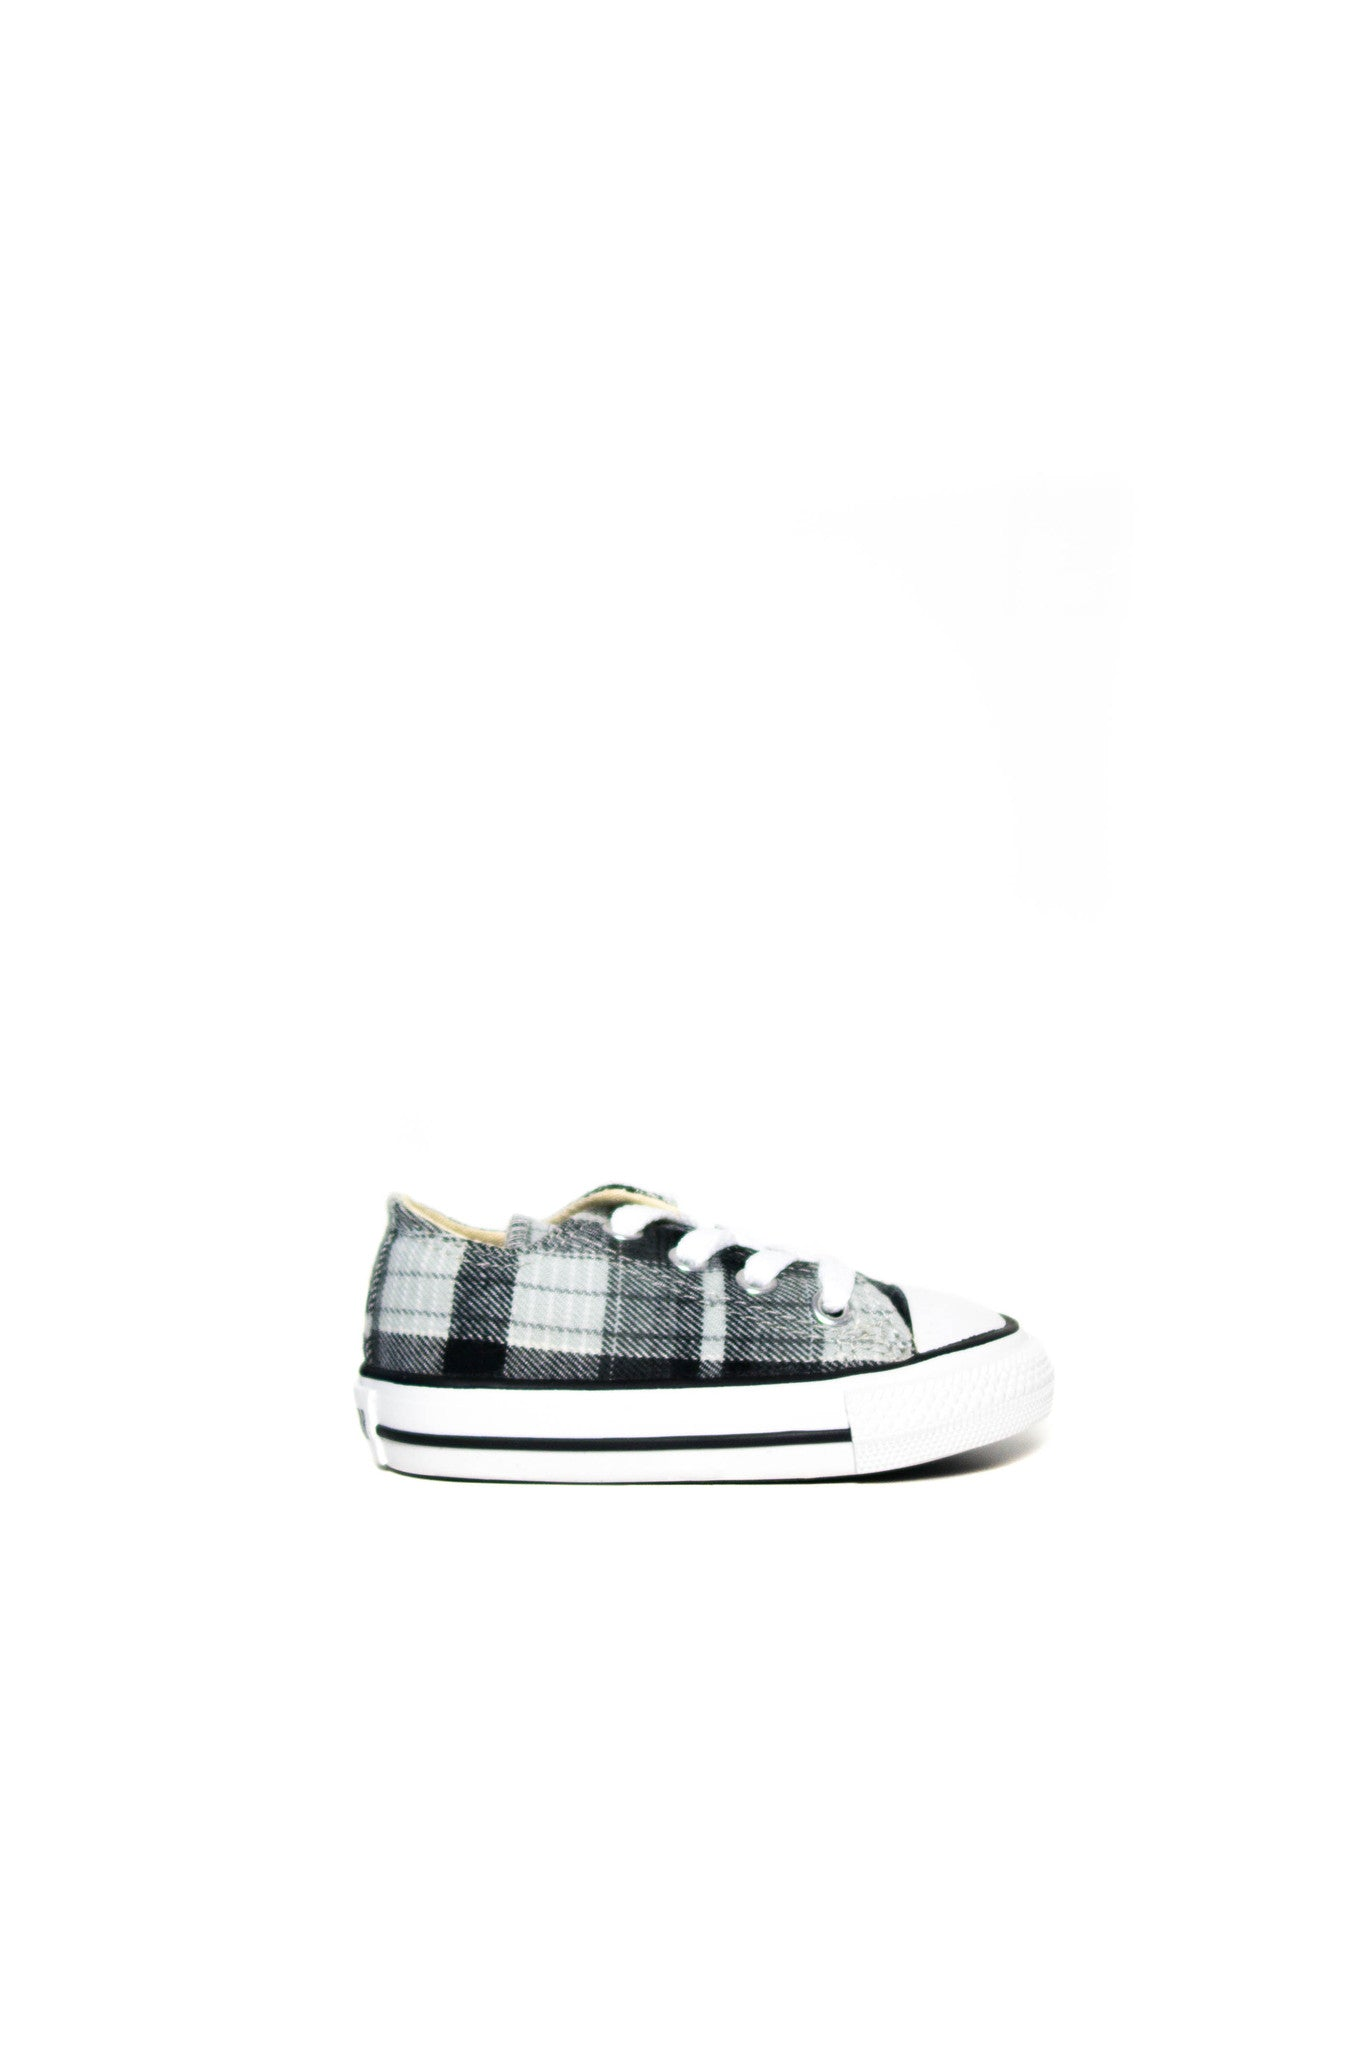 10002241 Converse Baby~Shoes 12-18M (US 4) at Retykle